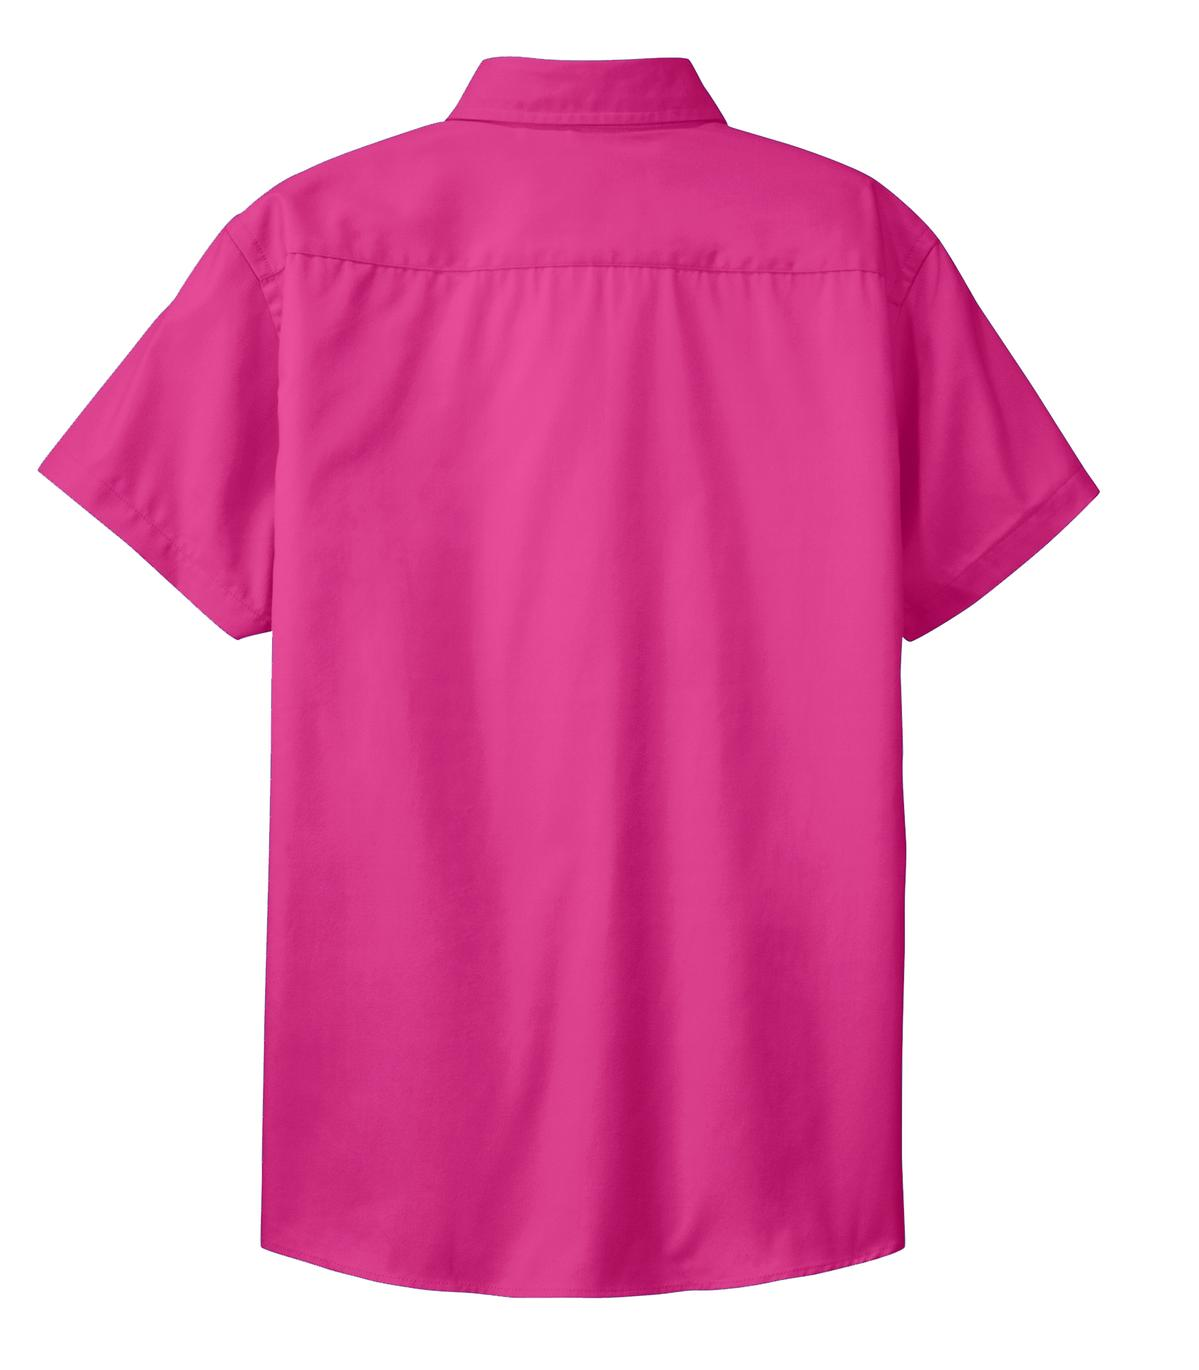 Mafoose Women's Comfortable Short Sleeve Easy Care Shirt Tropical Pink-Back